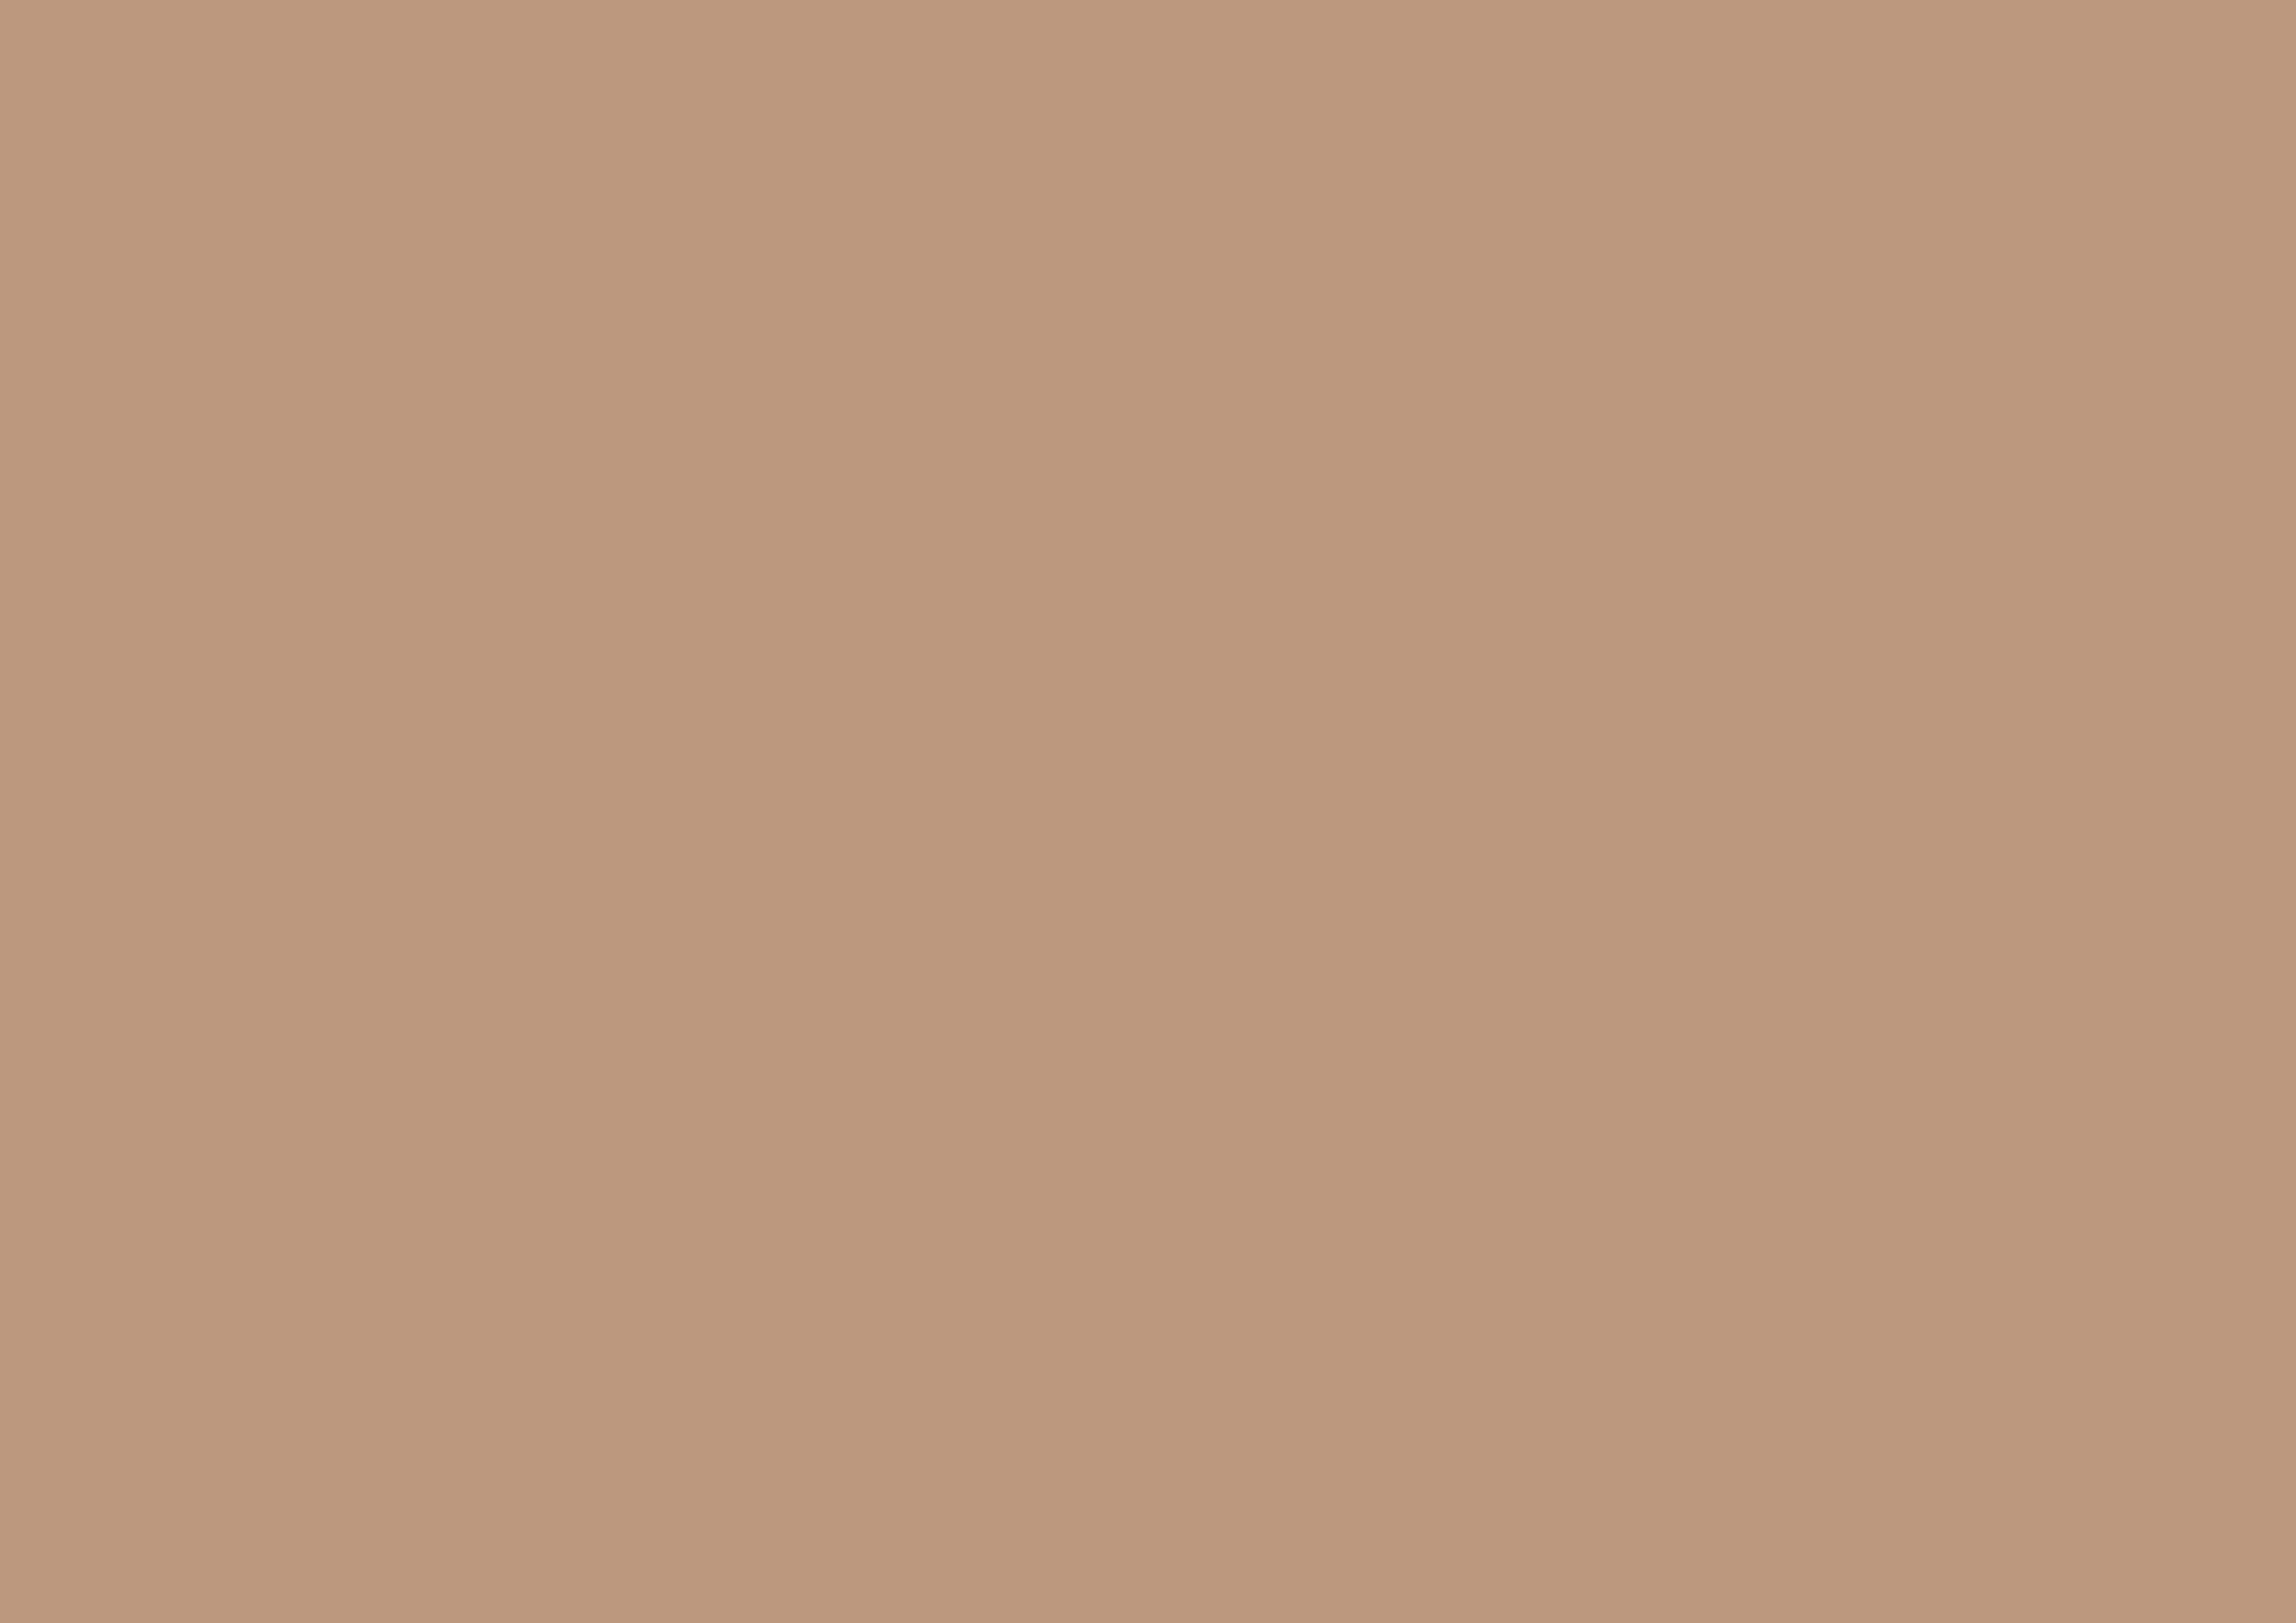 3508x2480 Pale Taupe Solid Color Background